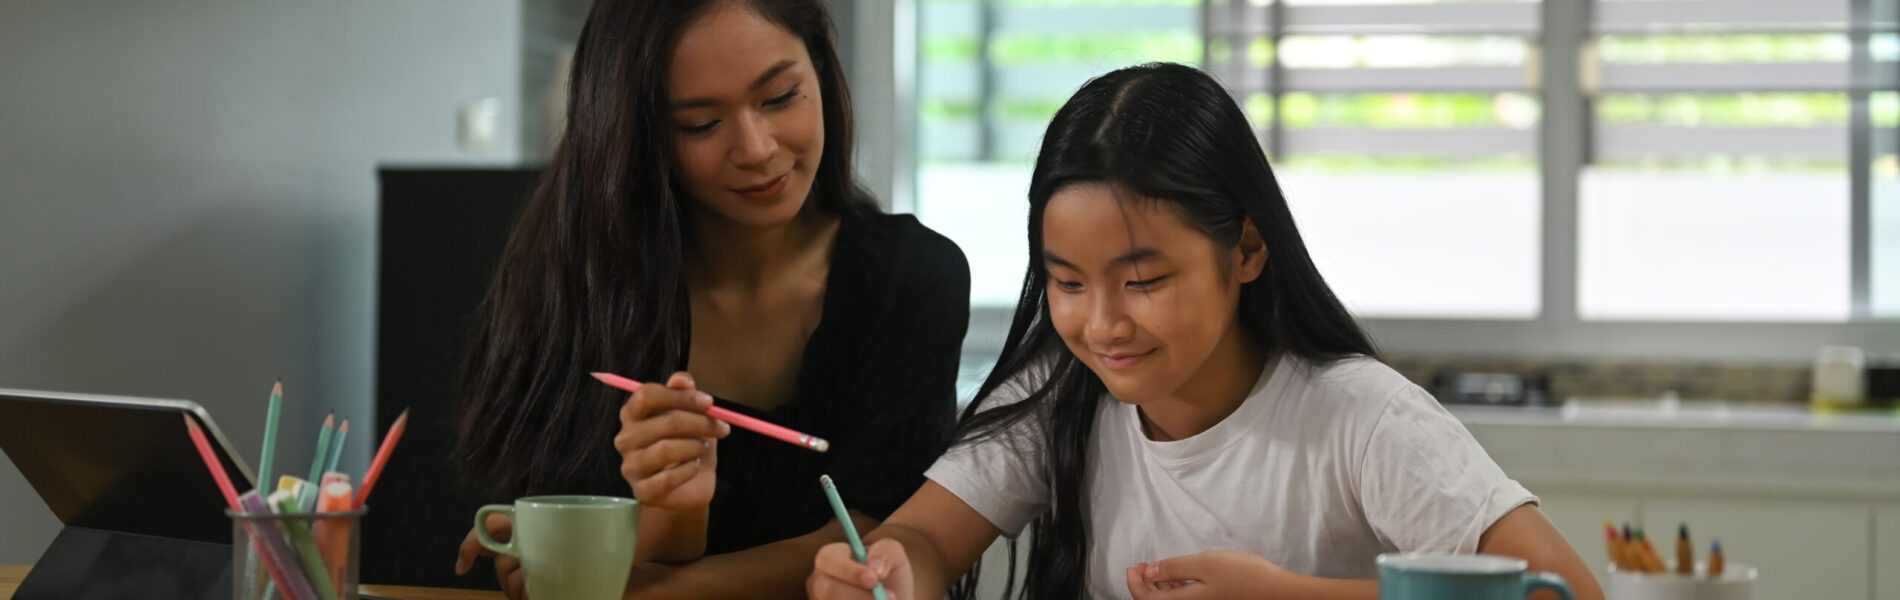 A mother is sitting with her daughter and teaching her homework at the wooden working desk.